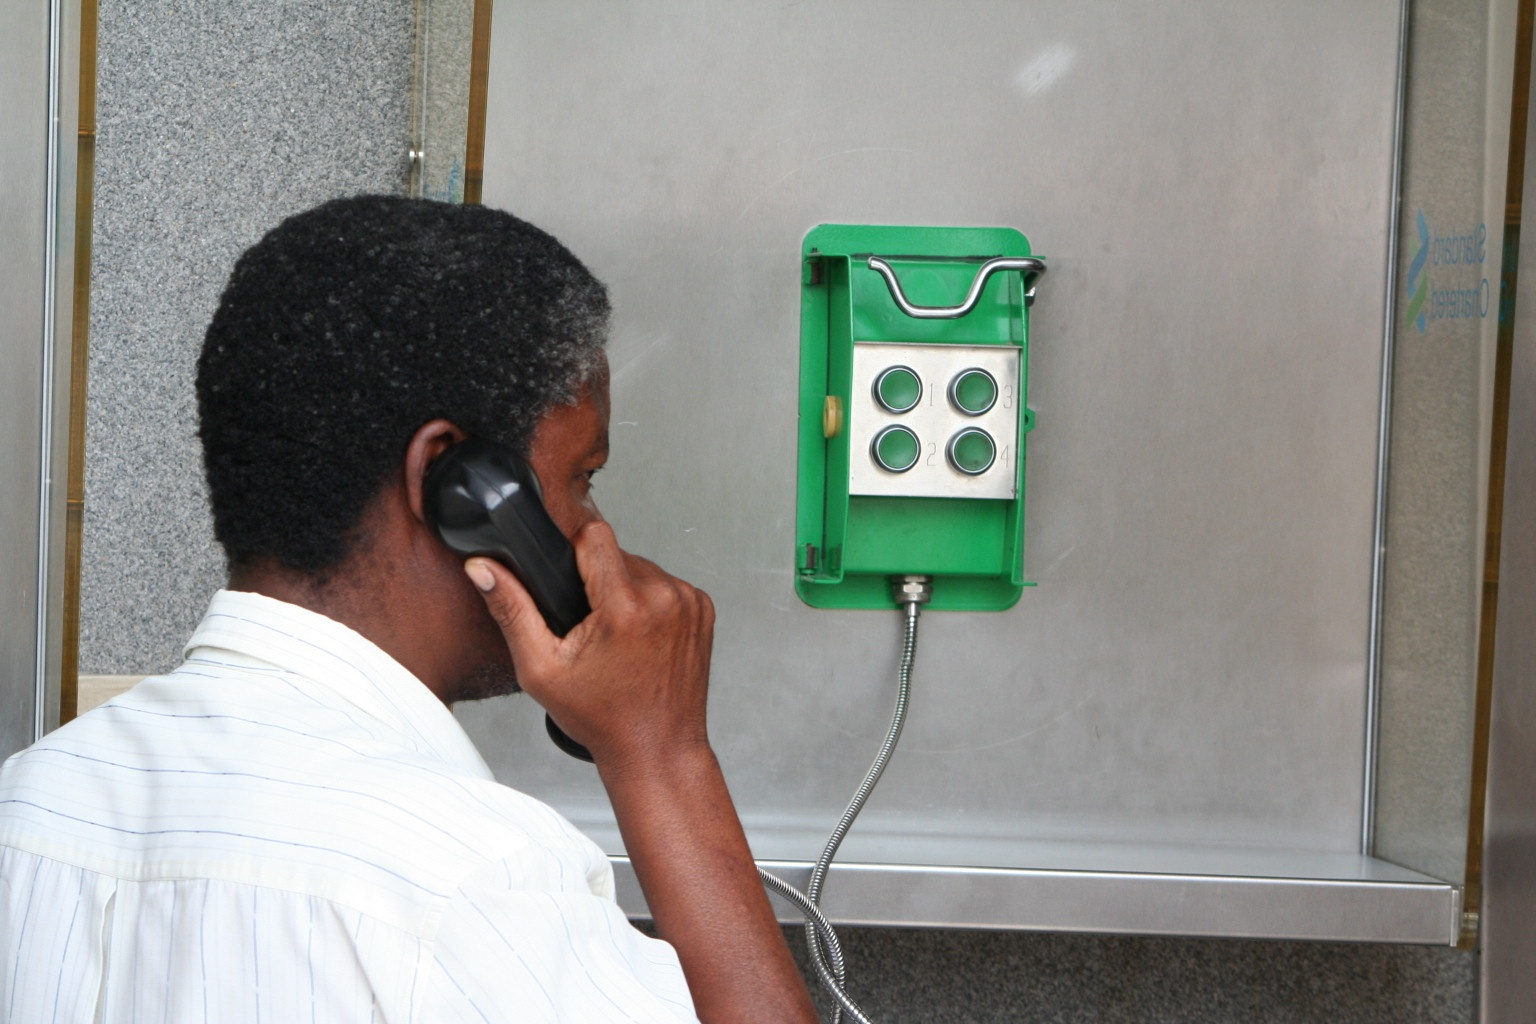 Telecommunication is the key for developing countries